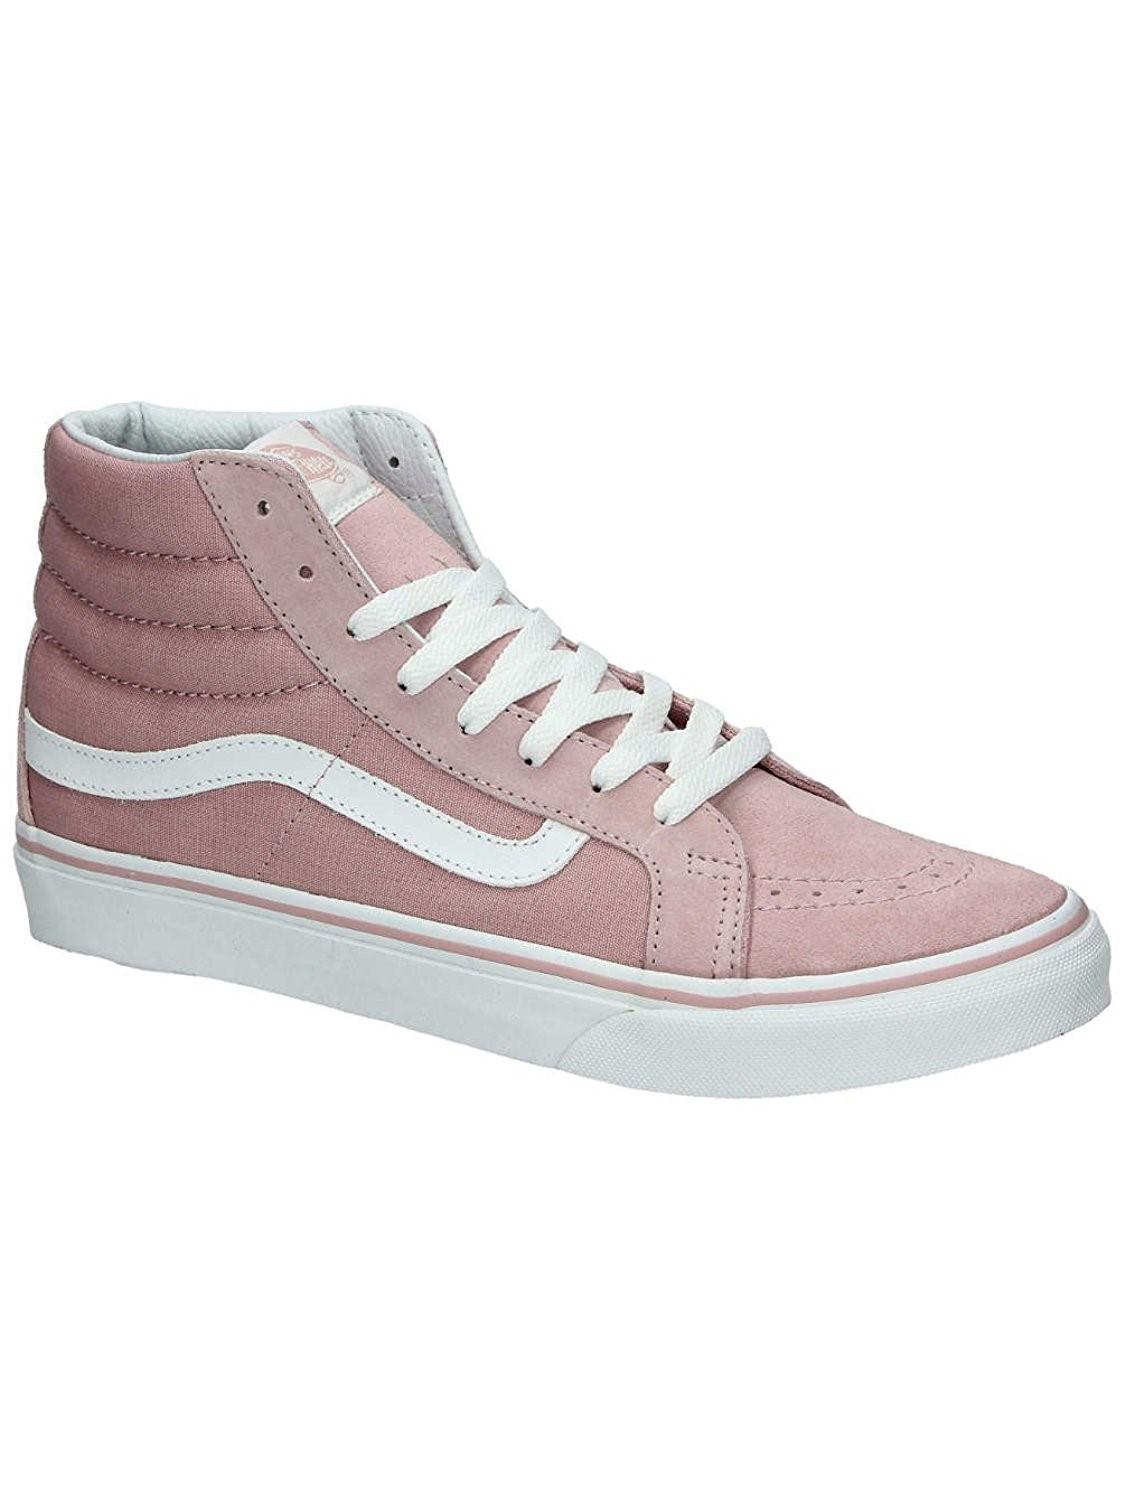 4412a790f1 Lyst - Vans Sk-hi Slim Hight Top Lace Up Fashion in Pink